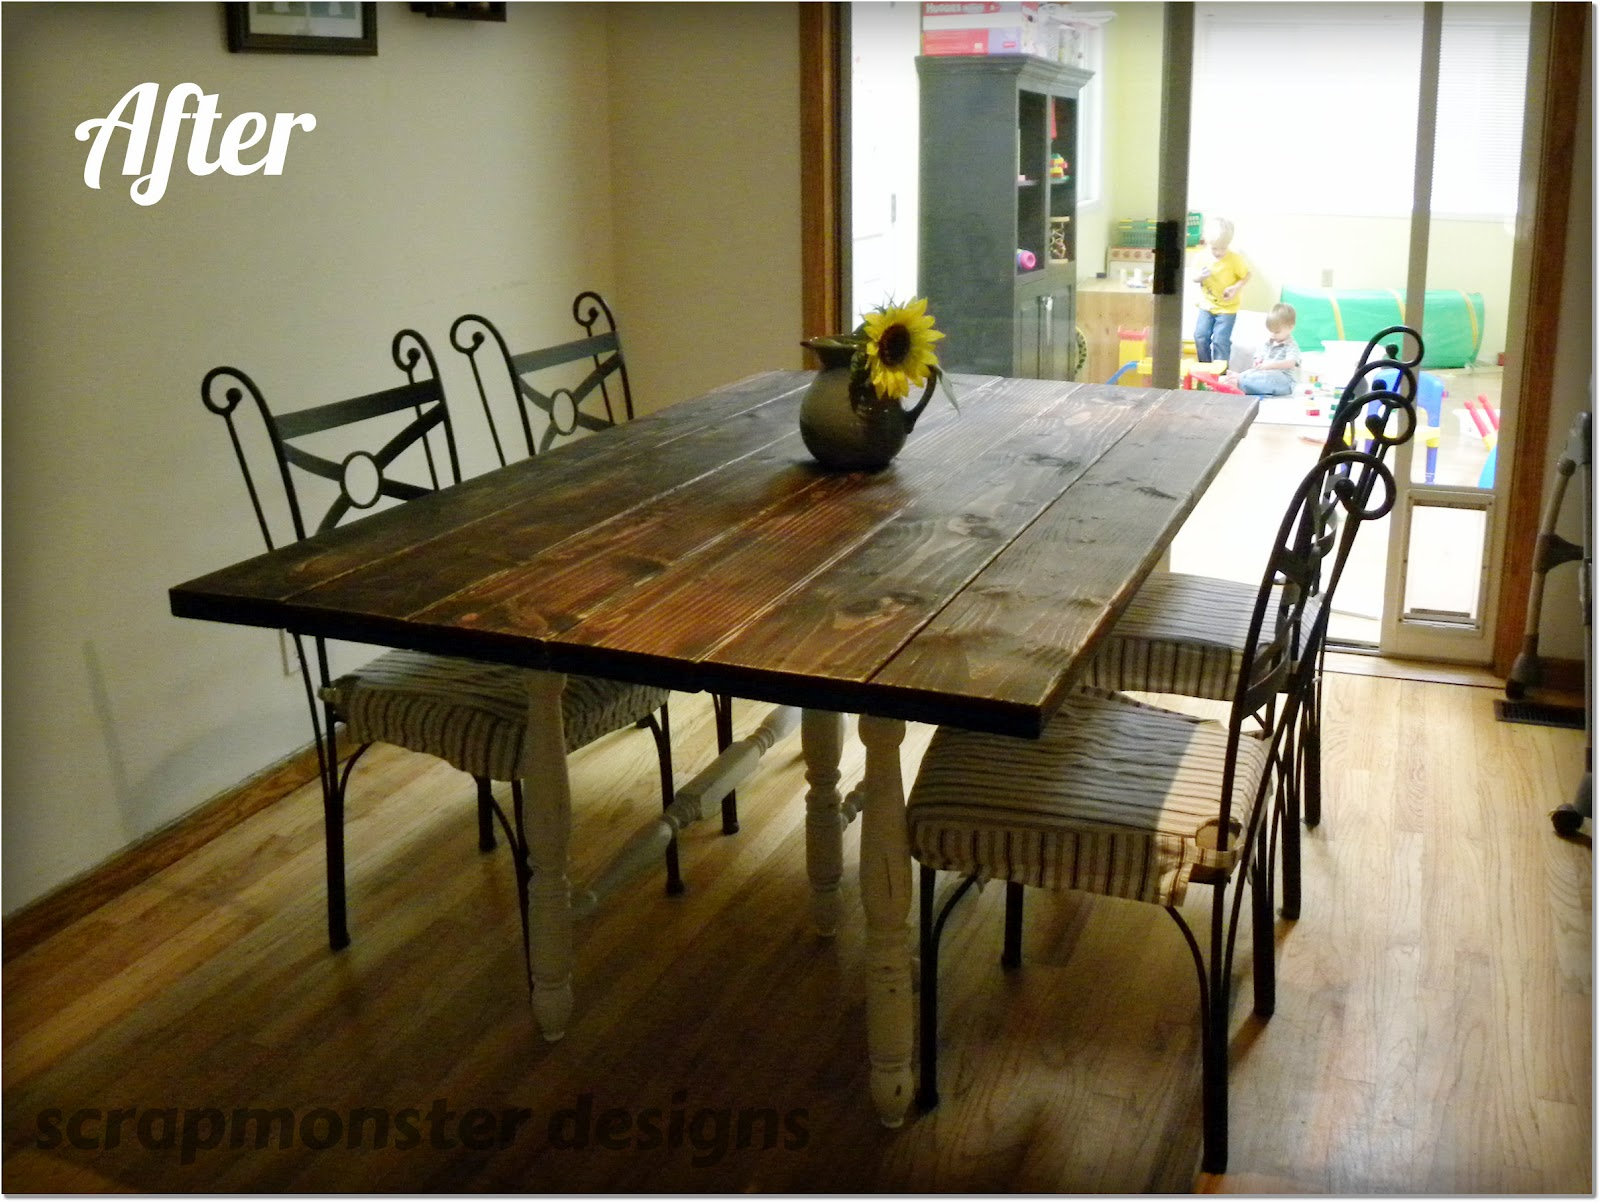 making dining room table scrapmonster rustic dining table make over. Interior Design Ideas. Home Design Ideas